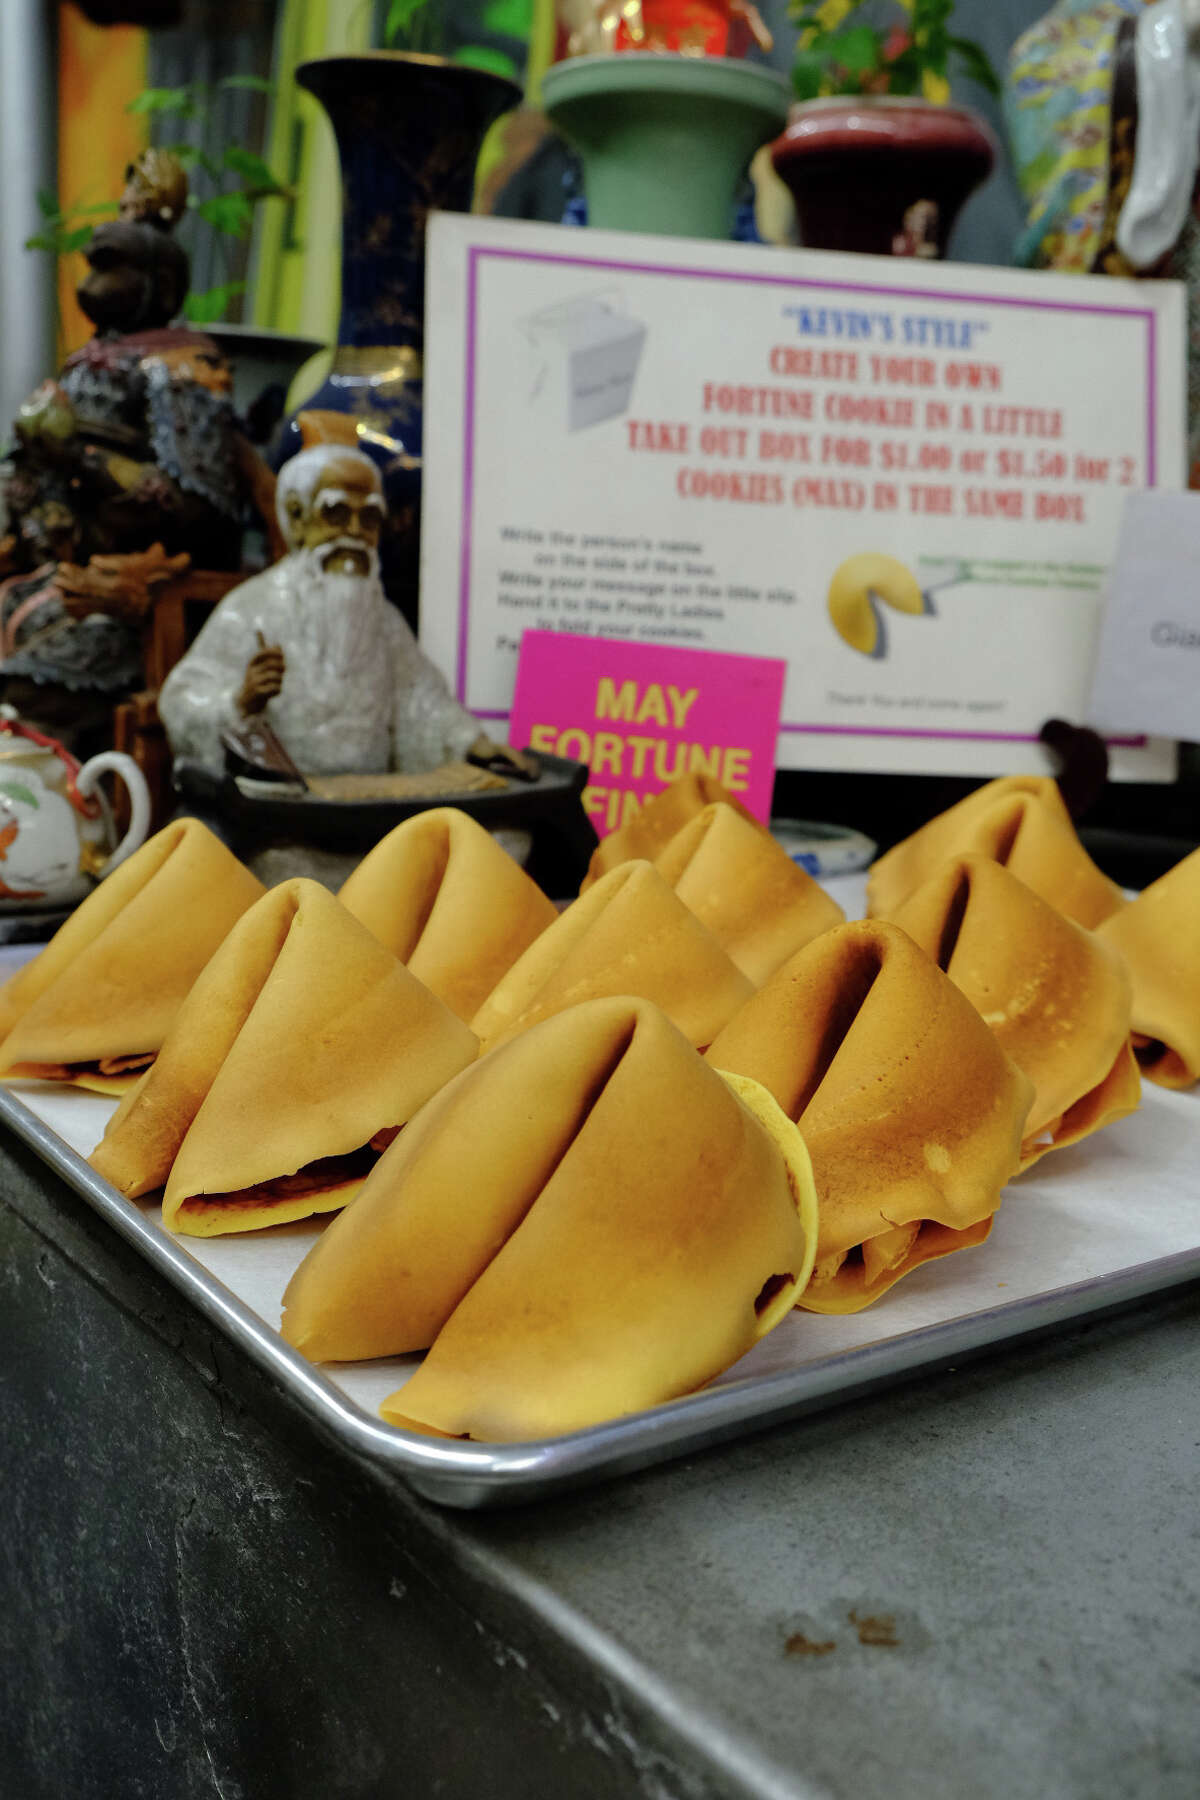 A display of large fortune cookies sits on one of the machines at the Golden Gate Fortune Cookie Factory on Nov. 8, 2020.